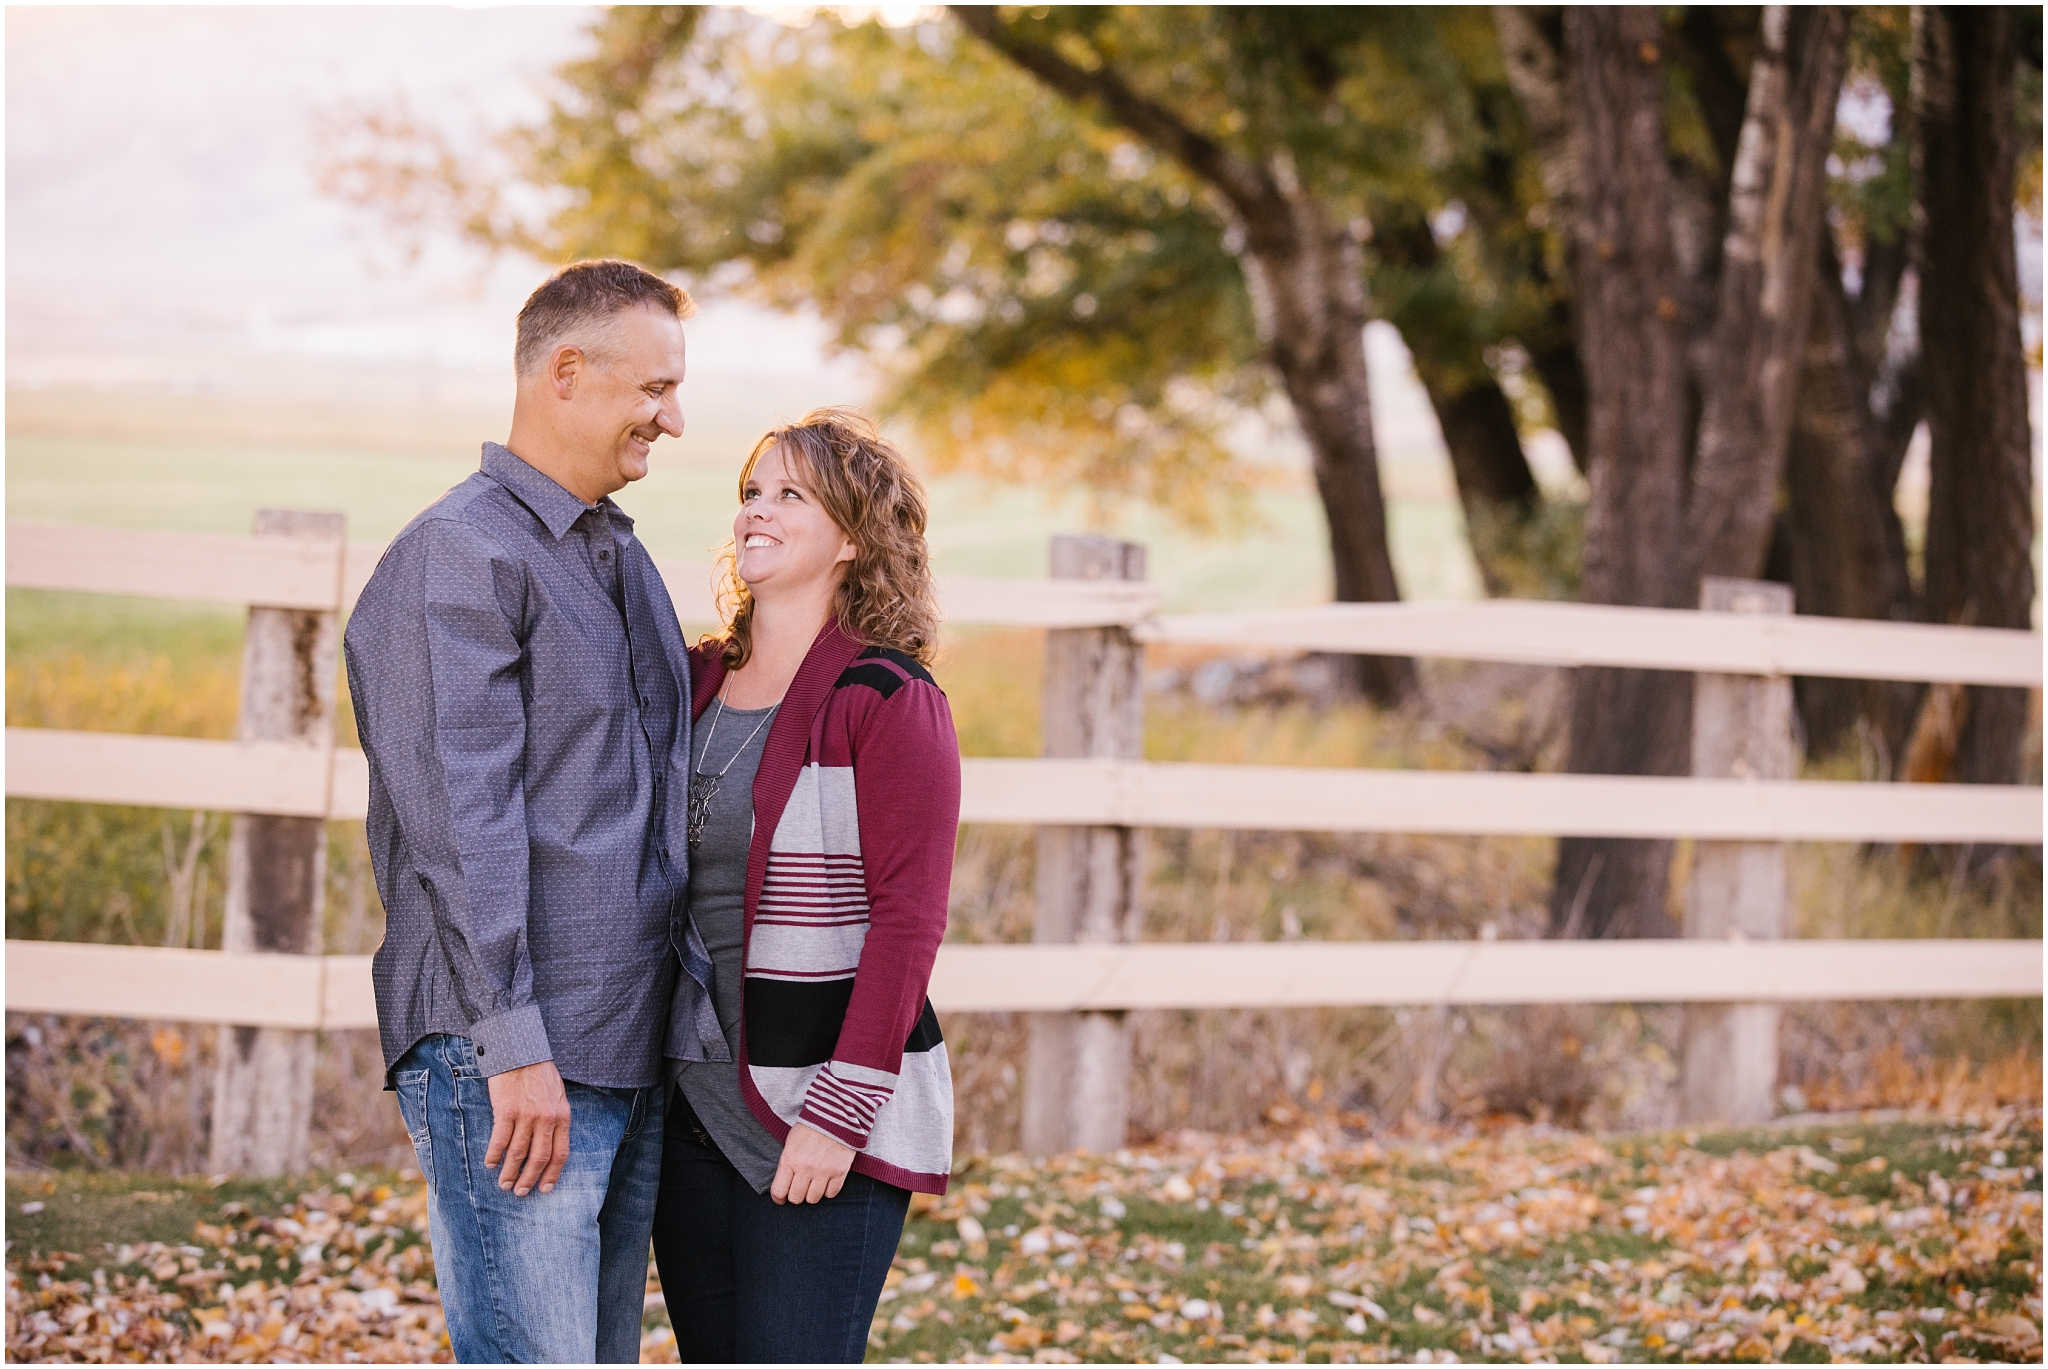 Fielding-60_Lizzie-B-Imagery-Utah-Family-Photographer-Central-Utah-Park-City-Salt-Lake-City.jpg